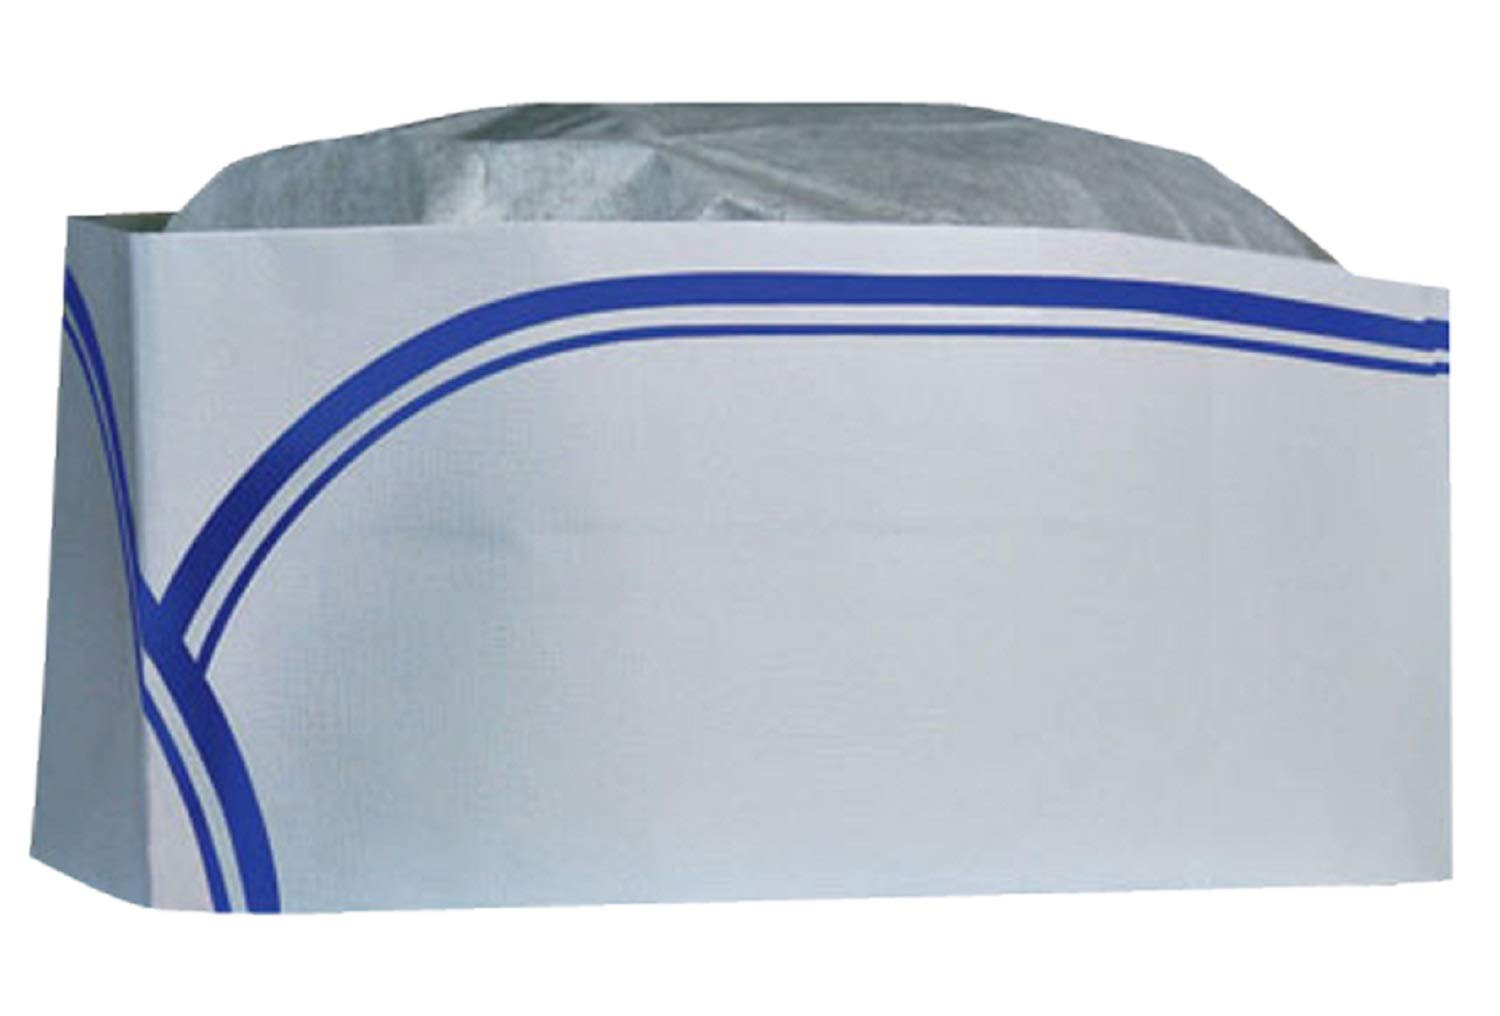 CELLUCAP RC100 Low Profile Overseas/Soda Jerk Hat, Tissue Crown, Blue Stripe, Box of 100